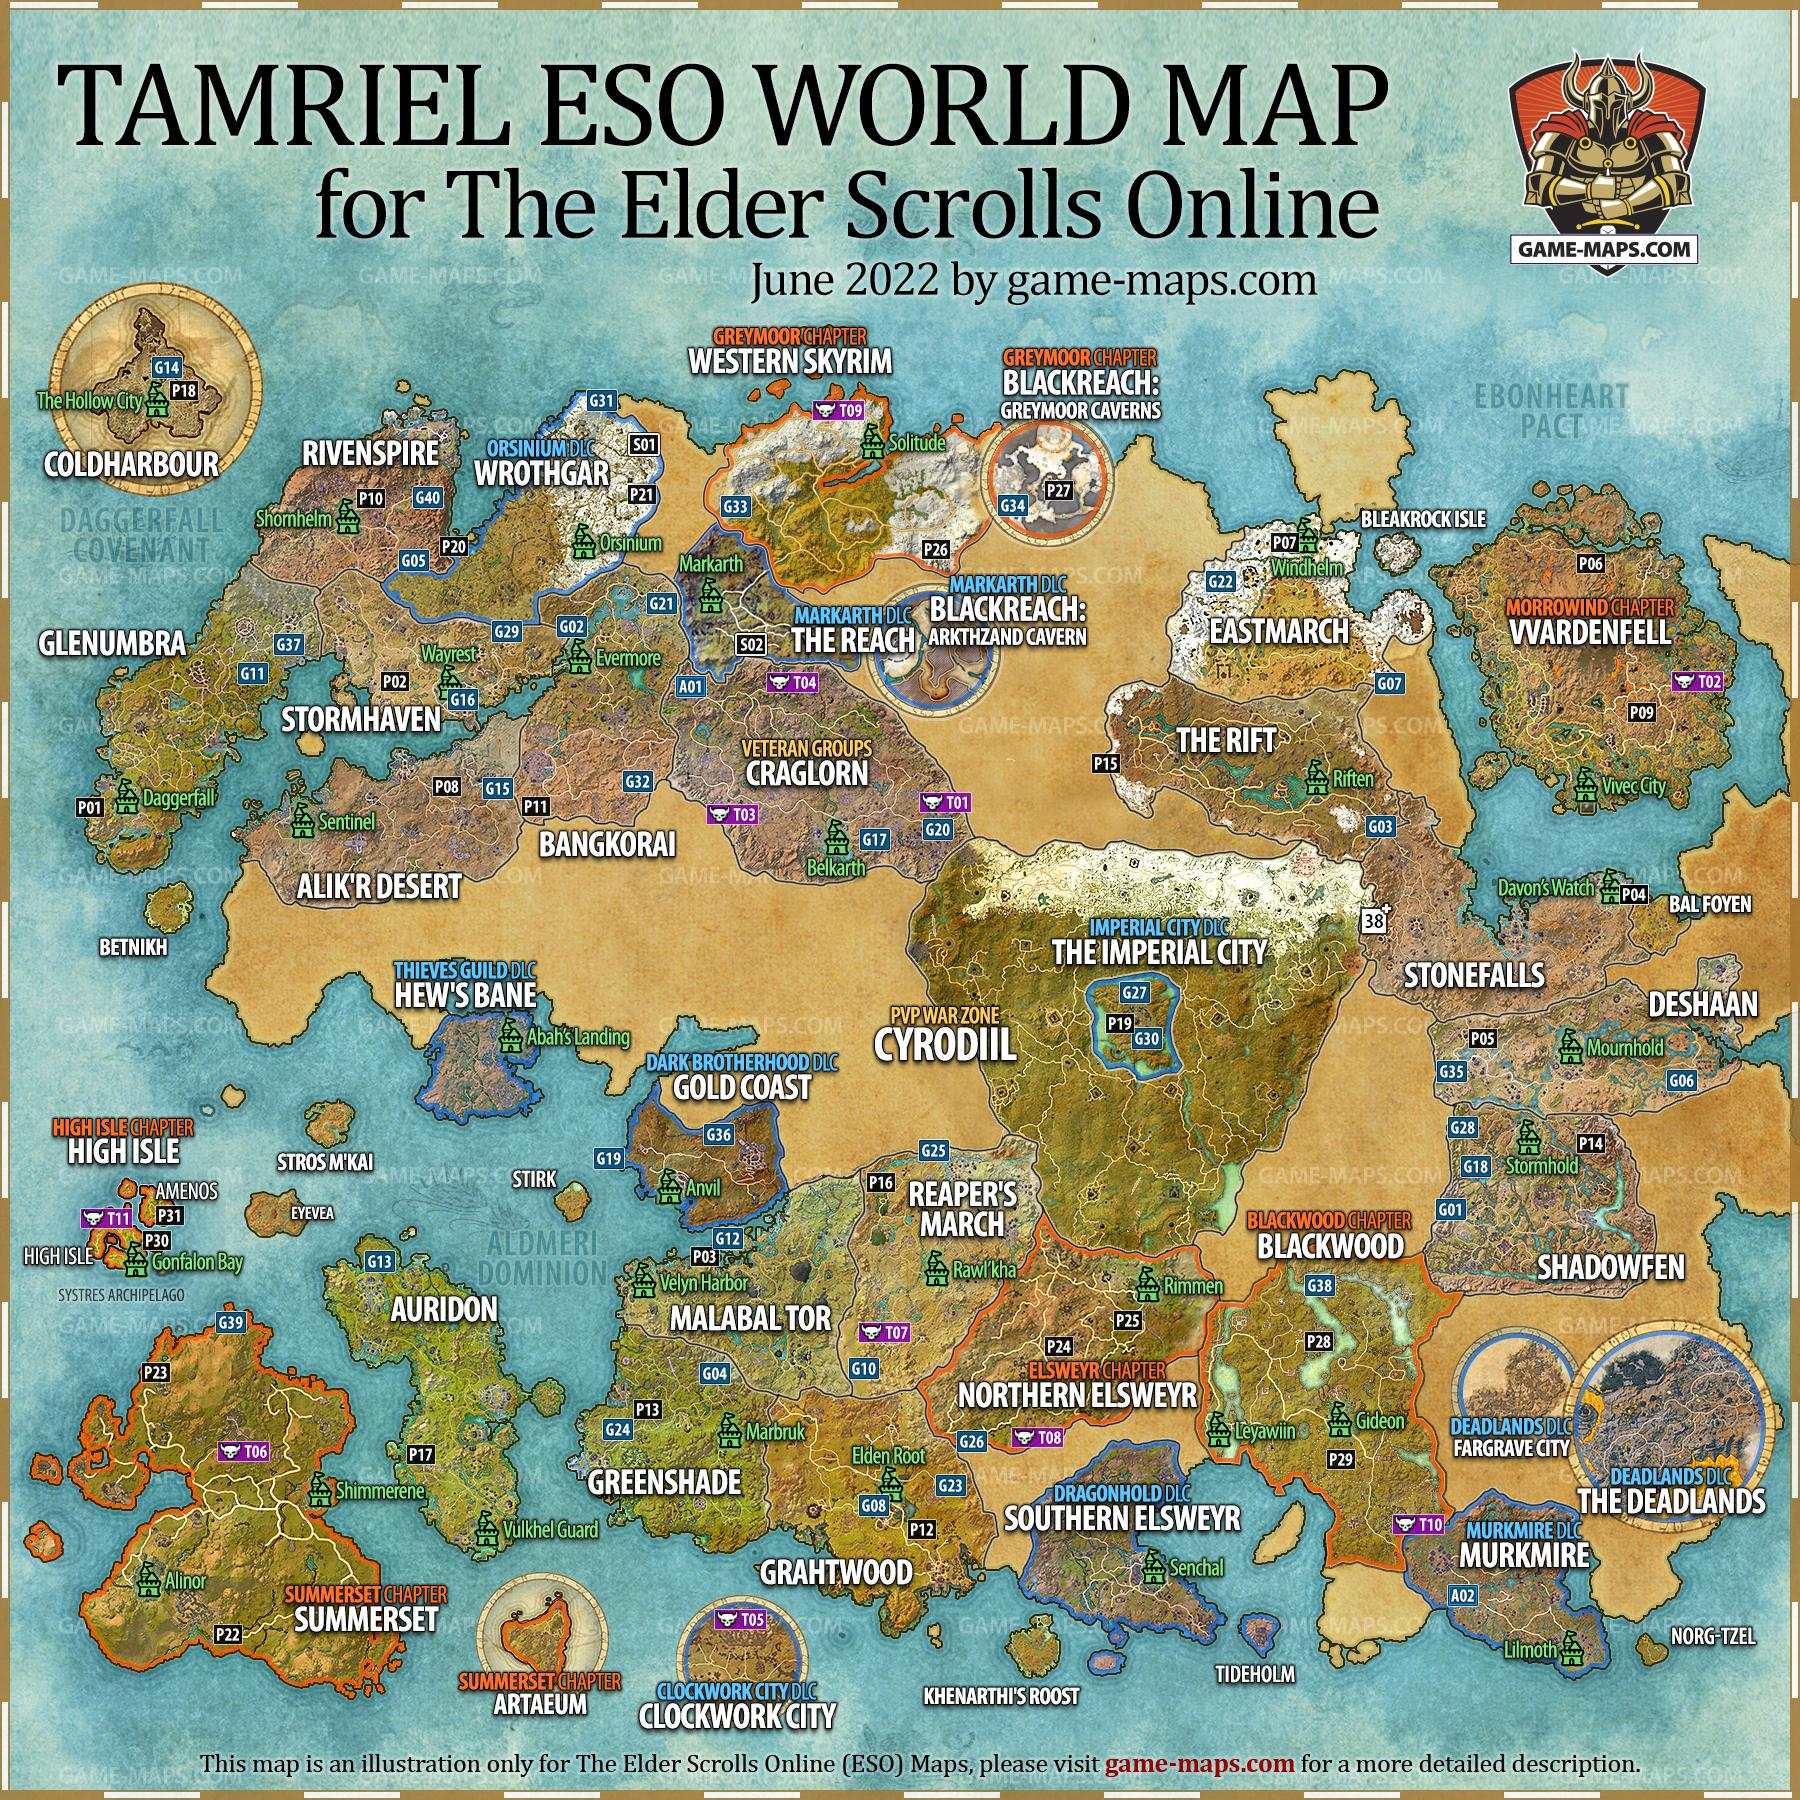 ESO-World-Map-Tamriel.jpg